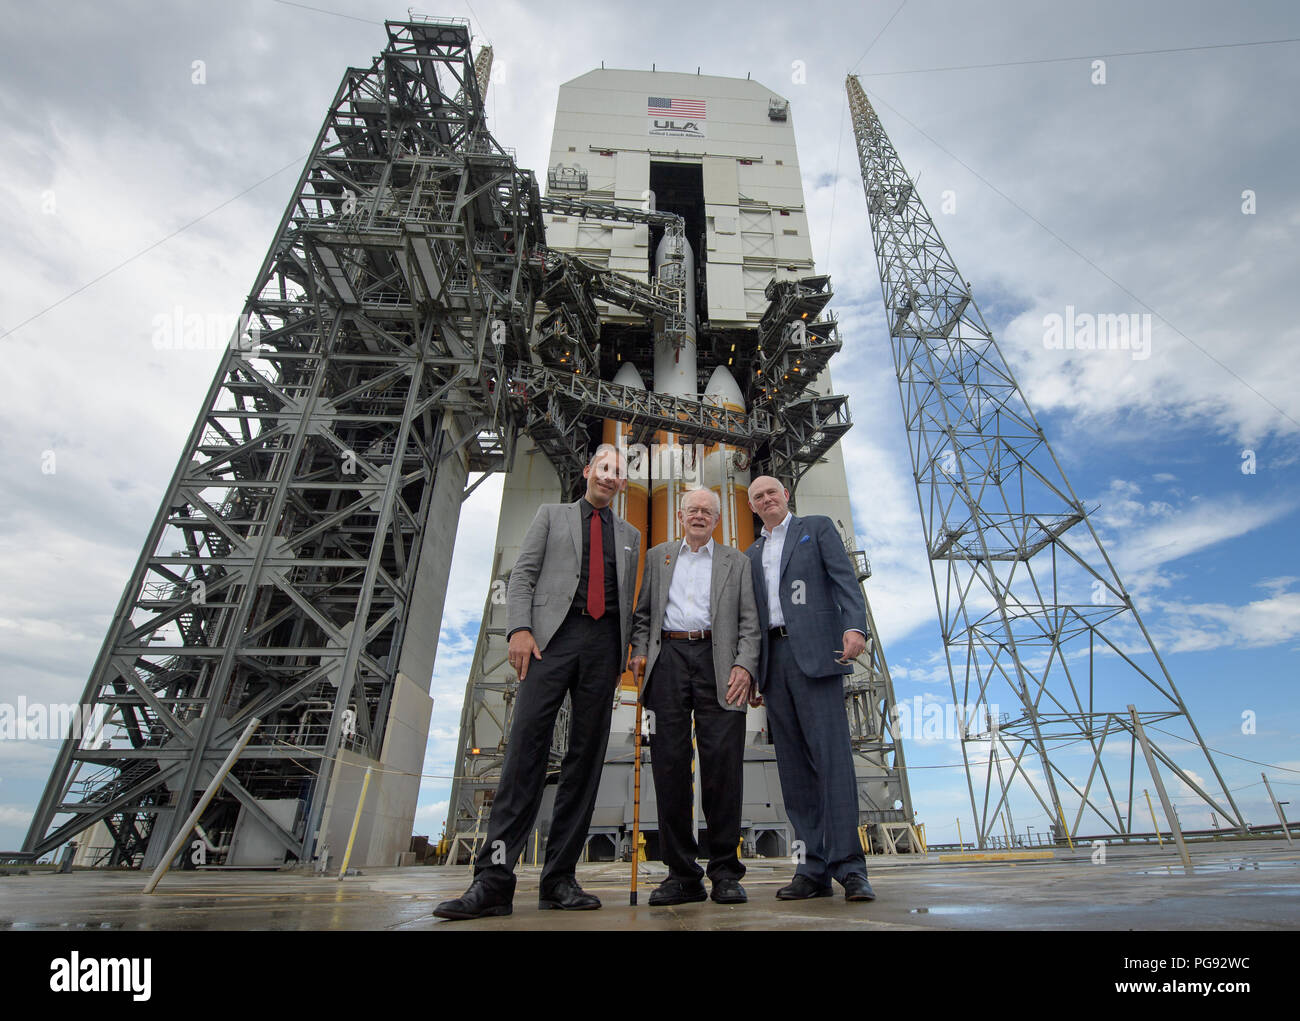 NASA Associate Administrator for the Science Mission Directorate Thomas Zurbuchen, left, American solar astrophysicist, and professor emeritus at the University of Chicago, Eugene Parker, center, and President and Chief Executive Officer for United Launch Alliance Tory Bruno pose for a group photo in front of  the ULA Delta IV Heavy rocket with NASA's Parker Solar onboard, Friday, Aug. 10, 2018, Launch Complex 37 at Cape Canaveral Air Force Station, Florida. This is the first NASA mission that has been named for a living individual. Parker Solar Probe is humanity's first-ever mission into a pa - Stock Image